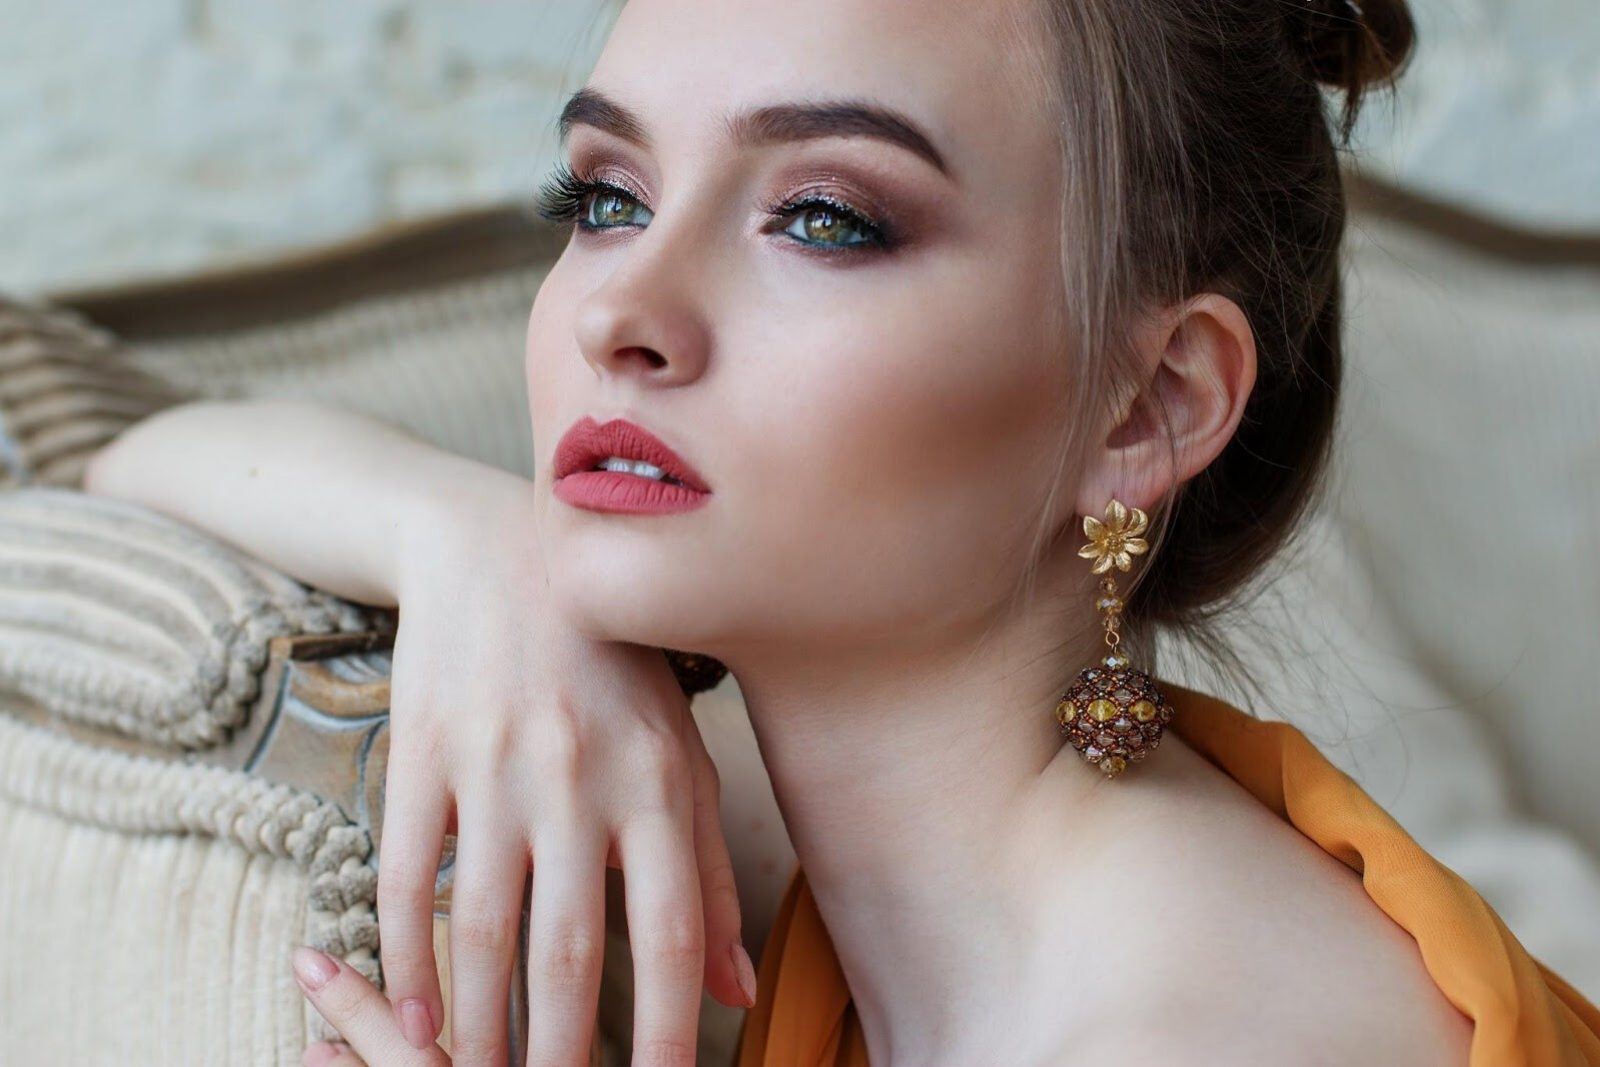 Woman Wearing Big Earrings | Your Guide To Fashion Jewelry Styles & Accessories